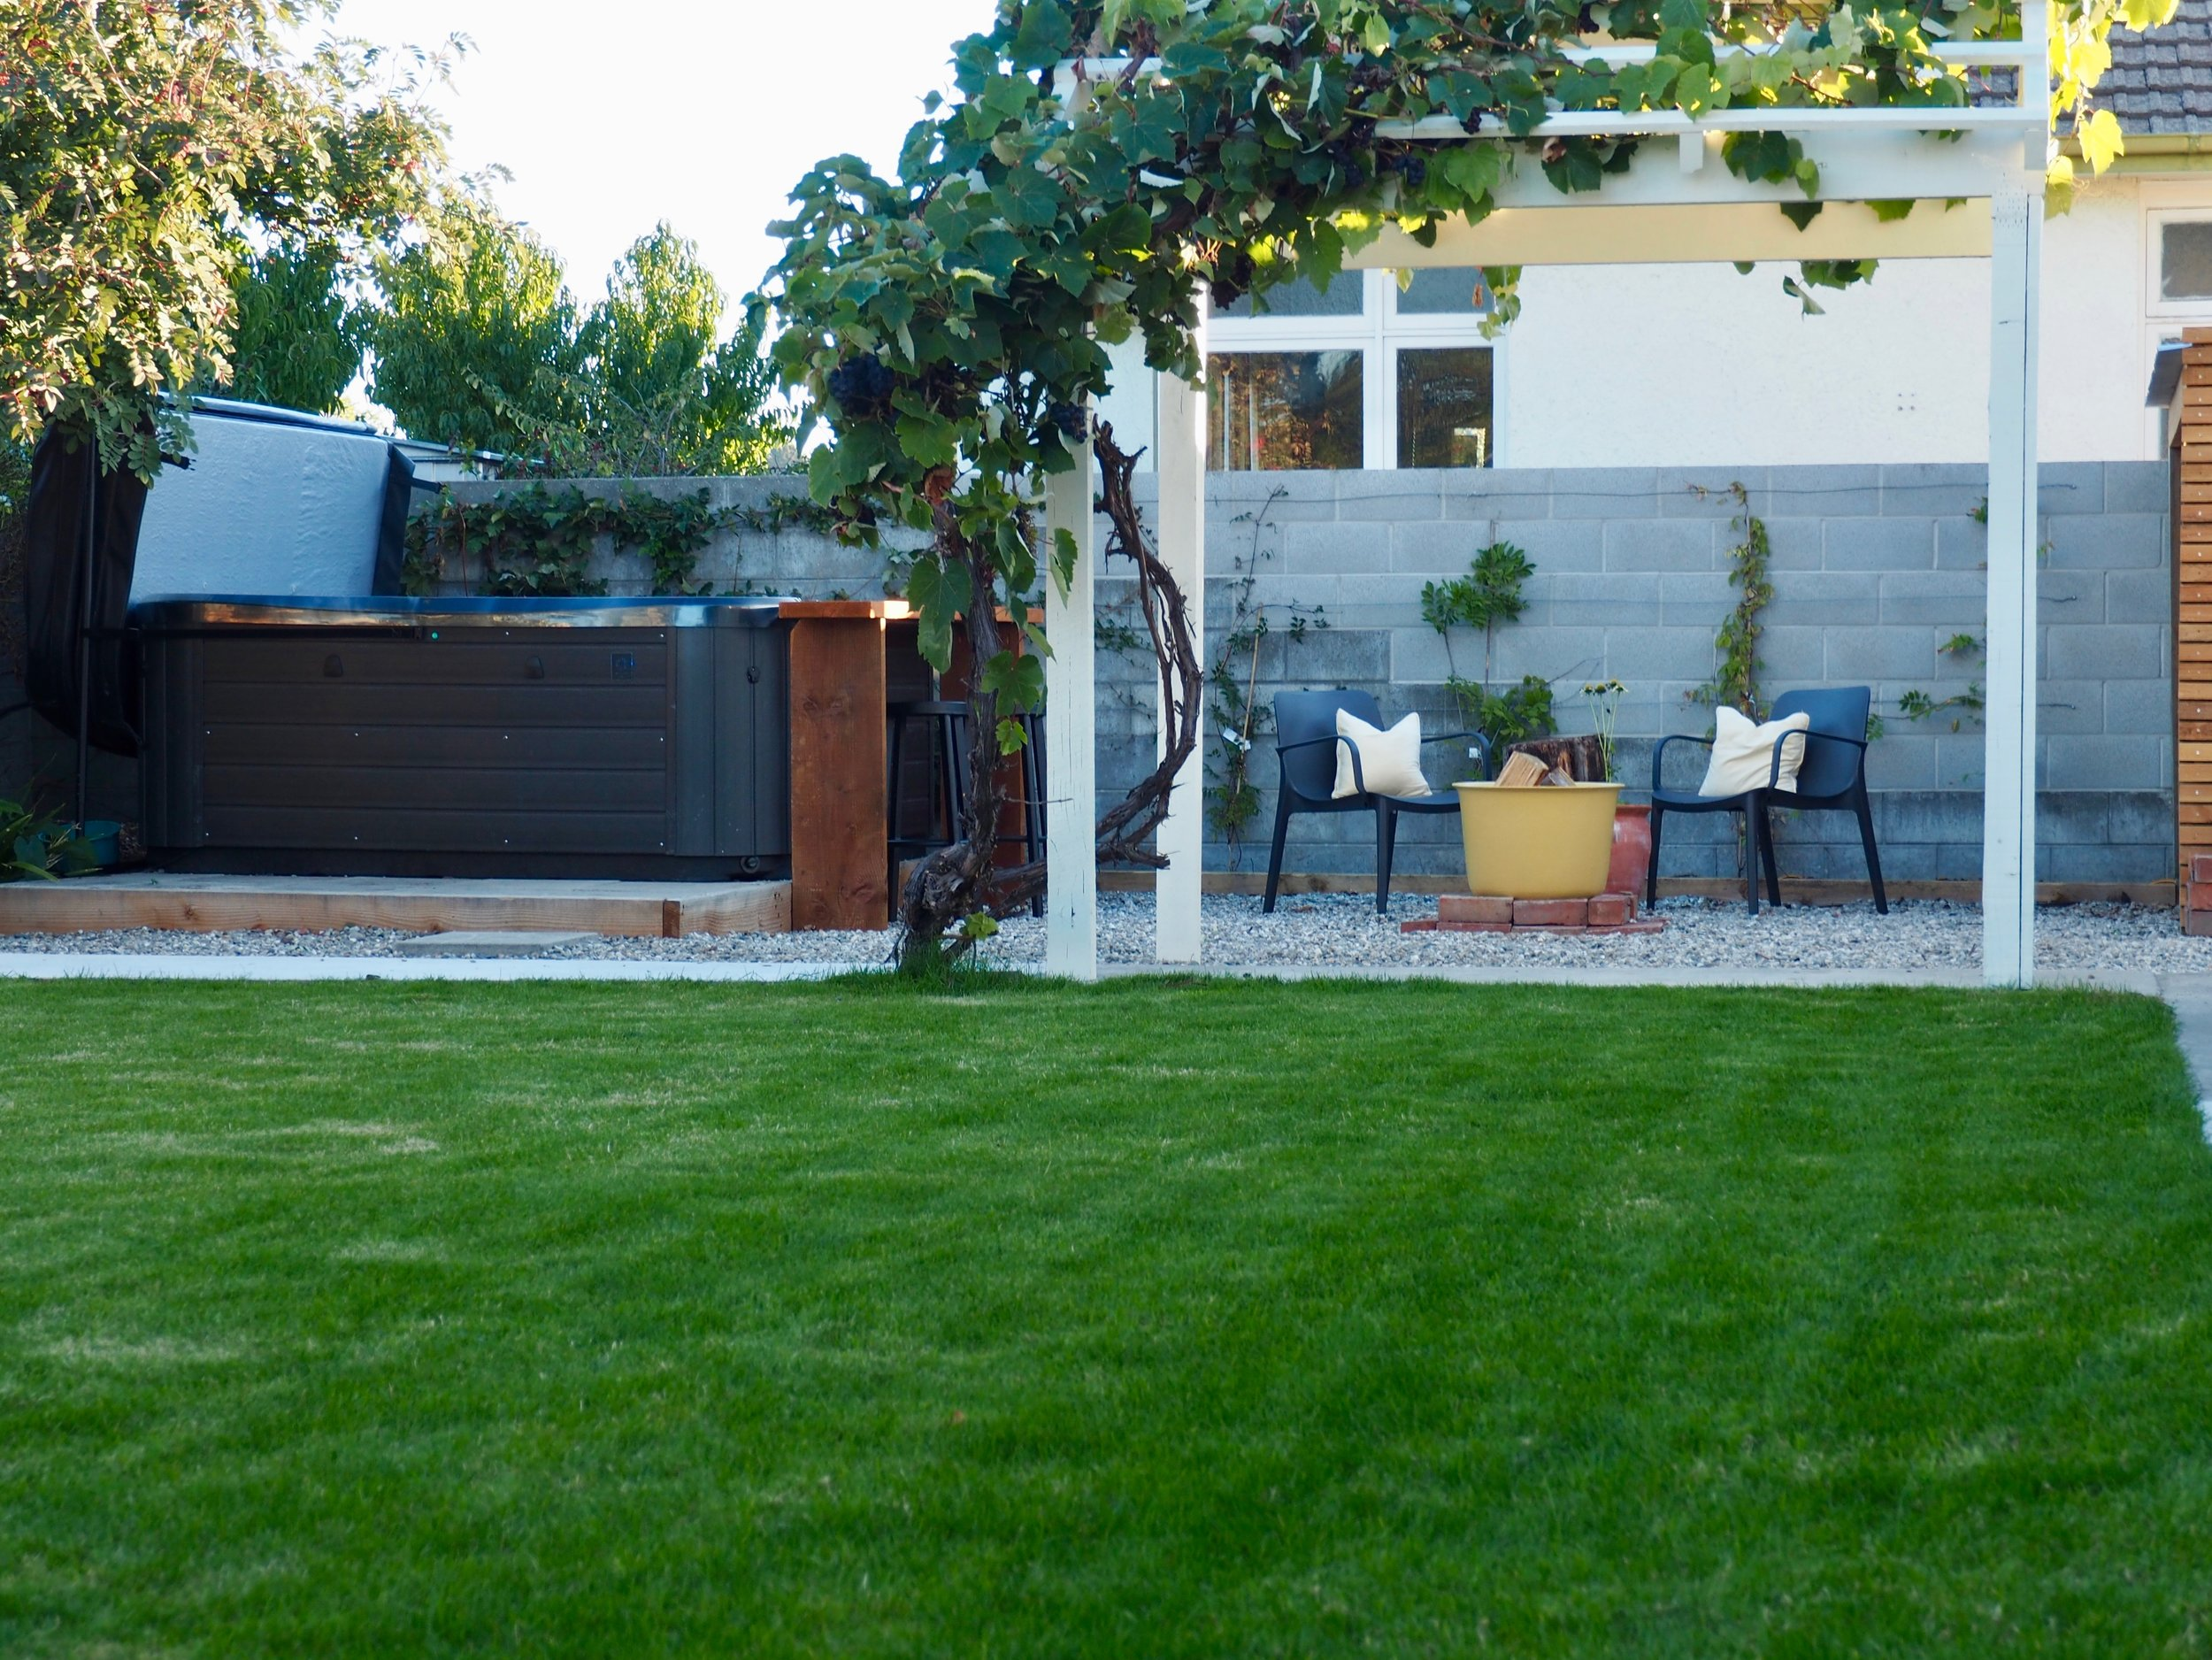 Exterior Room Reveal Pearson and Projects Charmer in Alexandra Alice and Caleb - 9.jpg